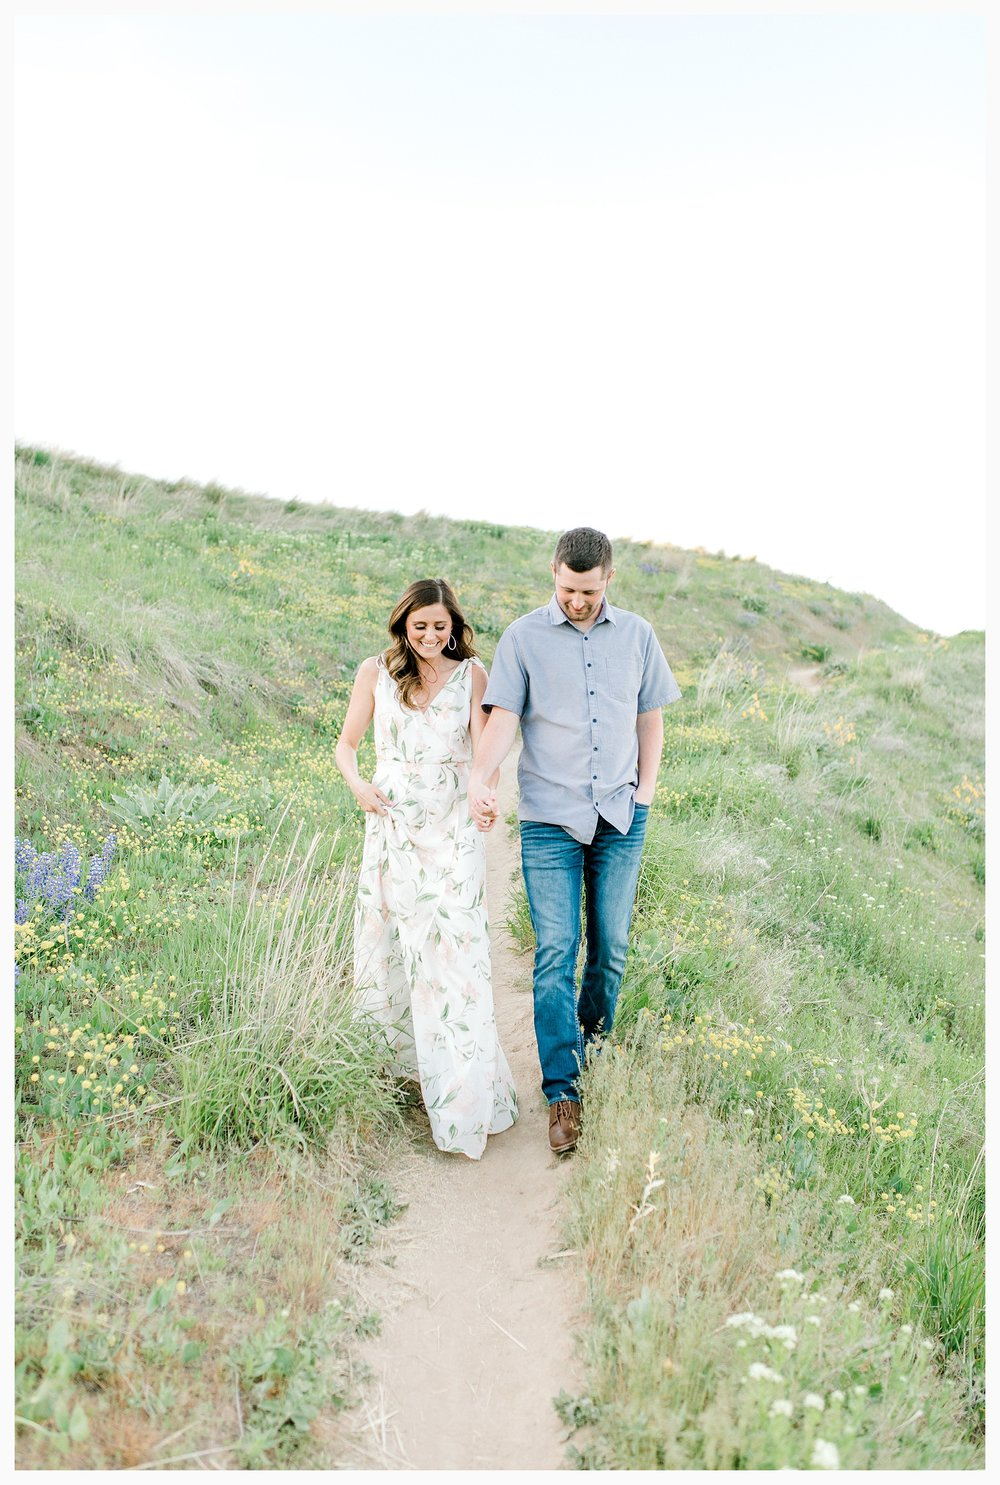 Engagement session amongst the wildflowers in Wenatchee, Washington | Engagement Session Outfit Inspiration for Wedding Photography with Emma Rose Company | Light and Airy PNW Photographer, Seattle Bride_0002.jpg